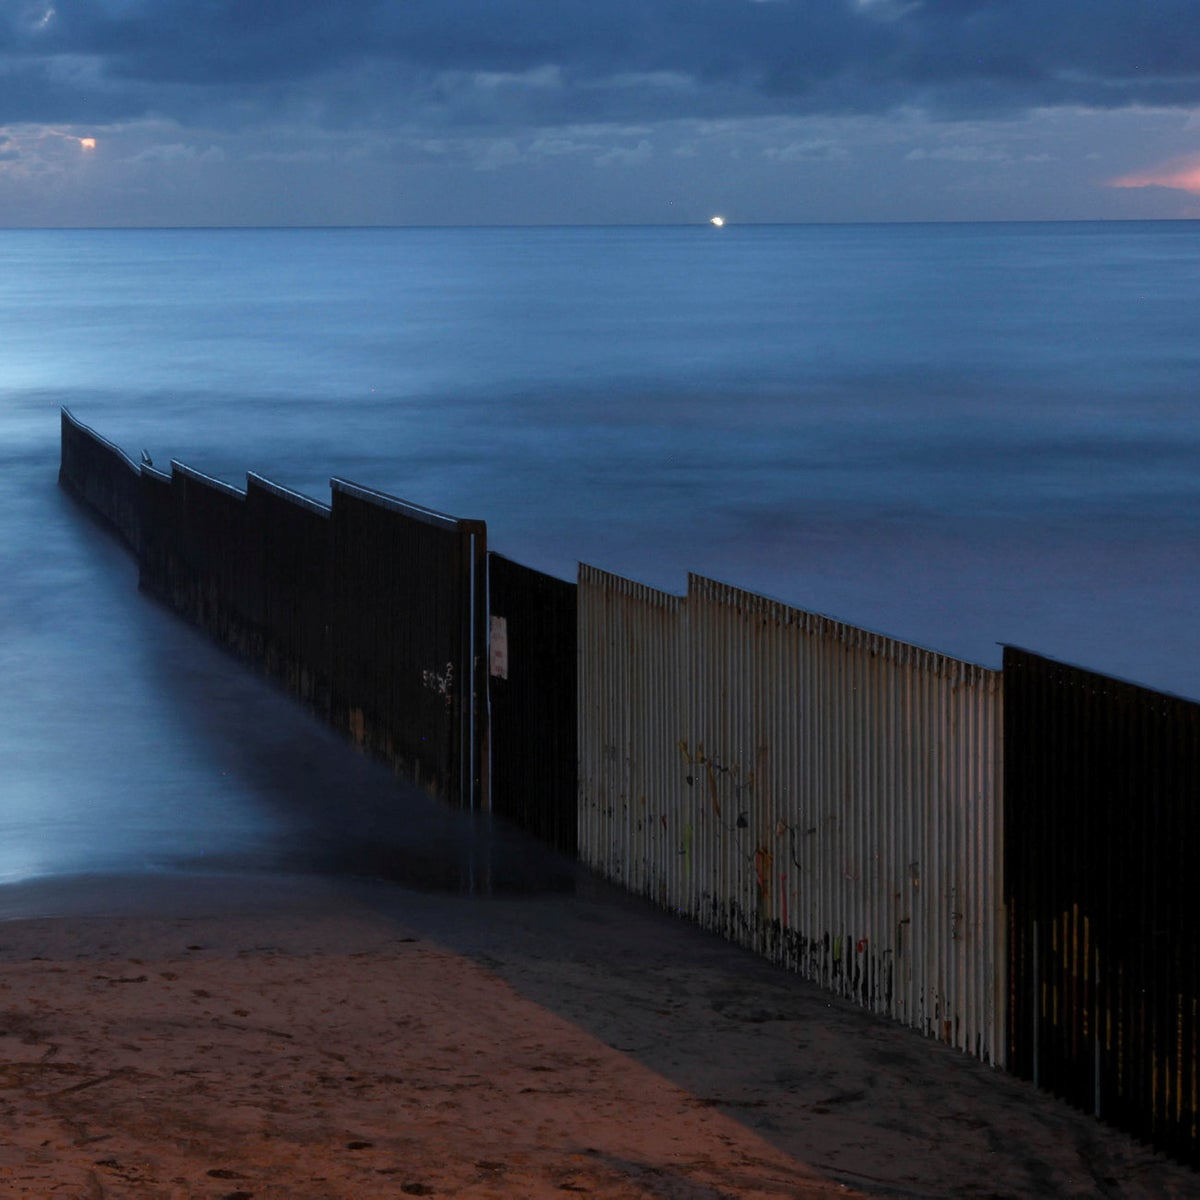 In this Feb. 28, 2018 photo, the sun sets over the U.S.-Mexico border wall that runs into the Pacific Ocean in Tijuana, Mexico. Mexico's government has refused to pay for a new U.S. border wall, a campaign promise by President Donald Trump.